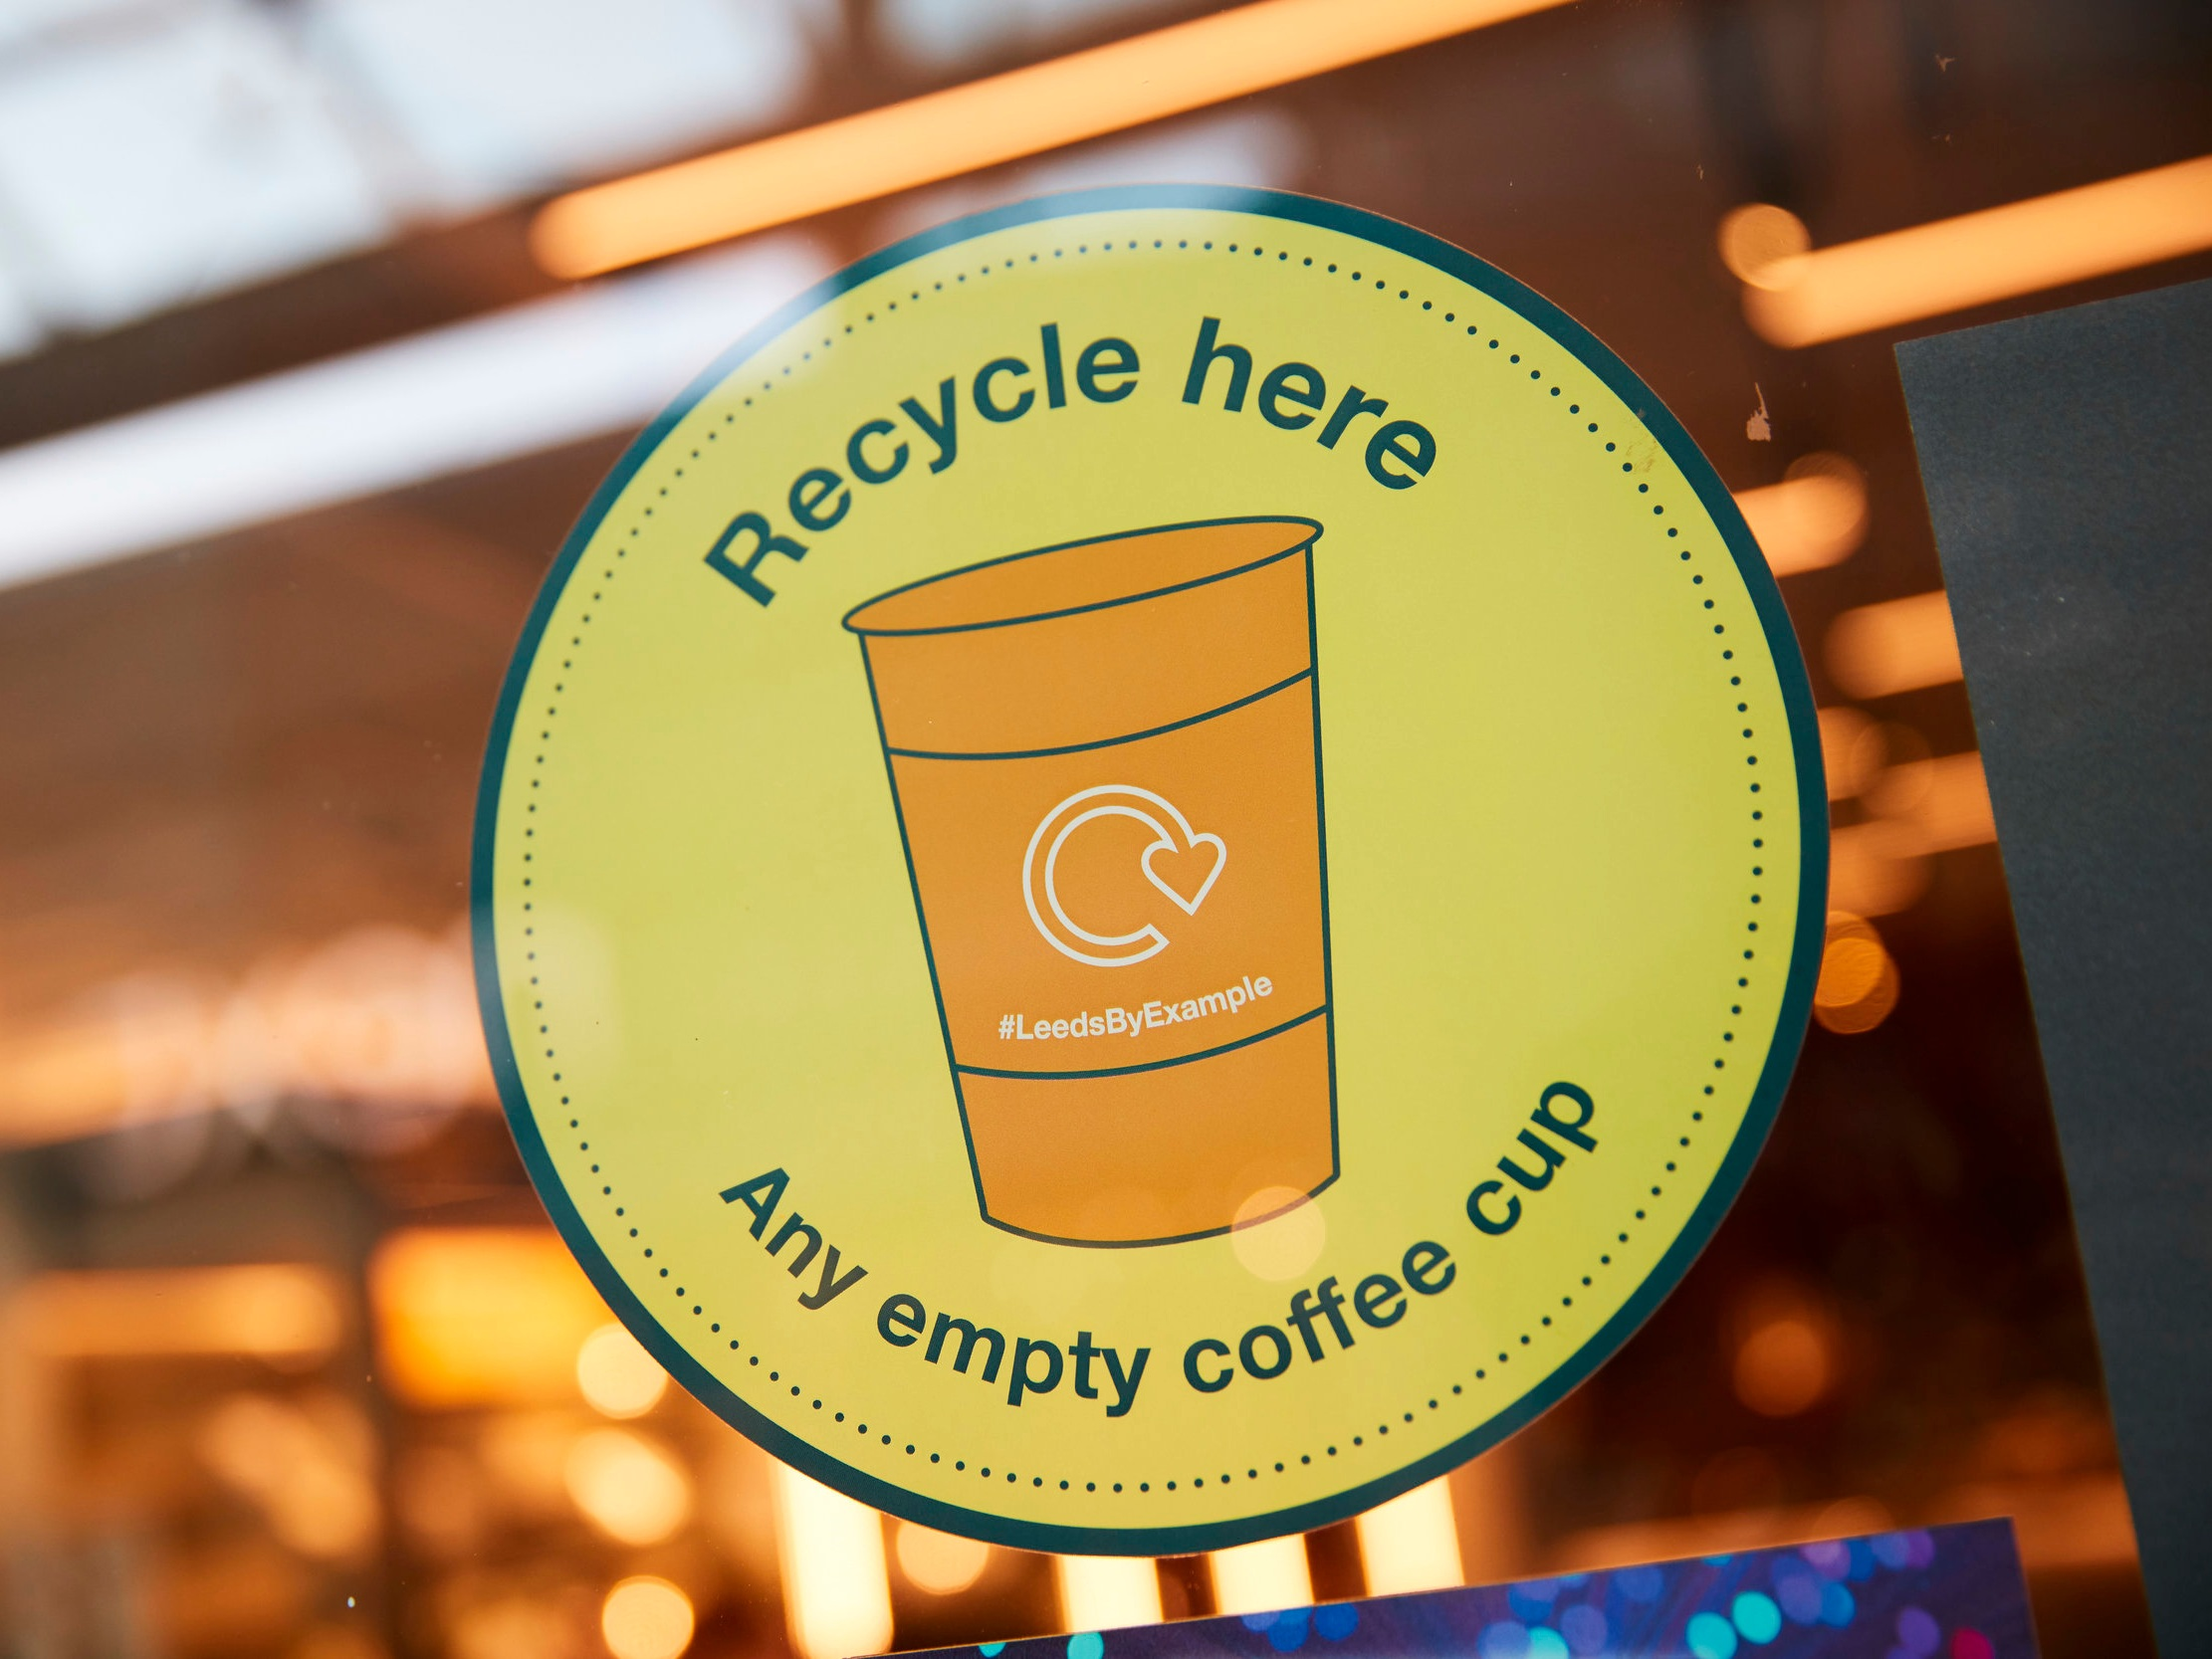 Find a recycling bin at a yellow pin - There are over 100 in Leeds City Centre, you're never more than 5 minutes away! Empty coffee cups can be recycled in any Caffè Nero, Costa, McDonald's, Pret and Starbucks or in one of 5 new bright orange bins.